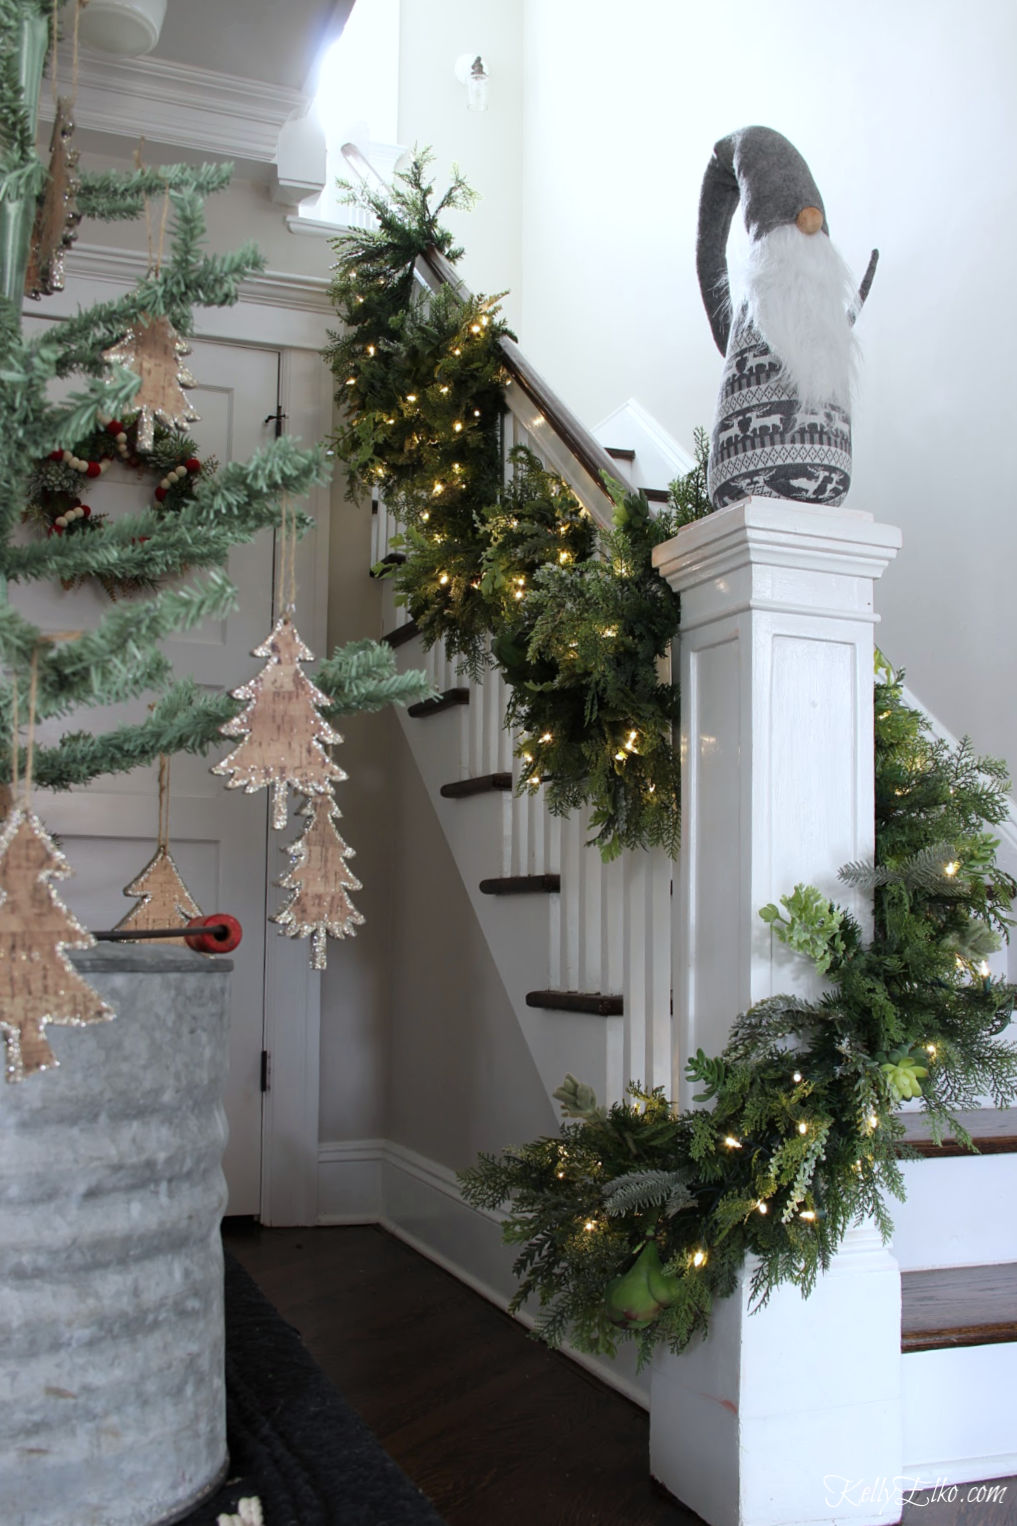 Tour this stunning Christmas home - love the lush succulent garland on the banister kellyelko.com #christmas #christmasgarland #christmasstairs #christmasbanister #gnone #christmasdecor #christmashometour